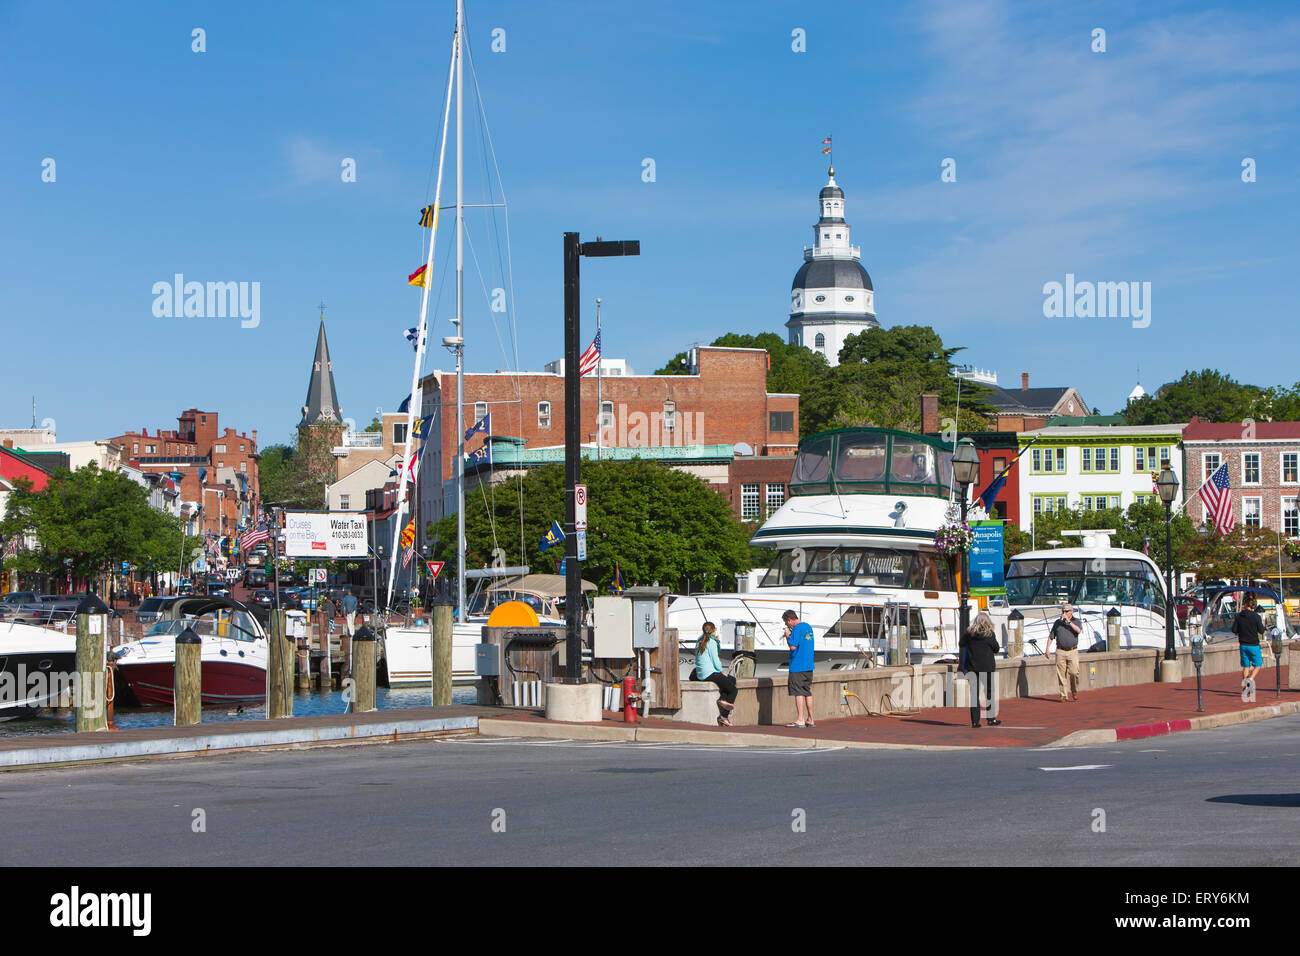 Yachts and sailboats are docked in slips in the Annapolis City Dock on Spa Creek, with Main Street and the Capitol - Stock Image